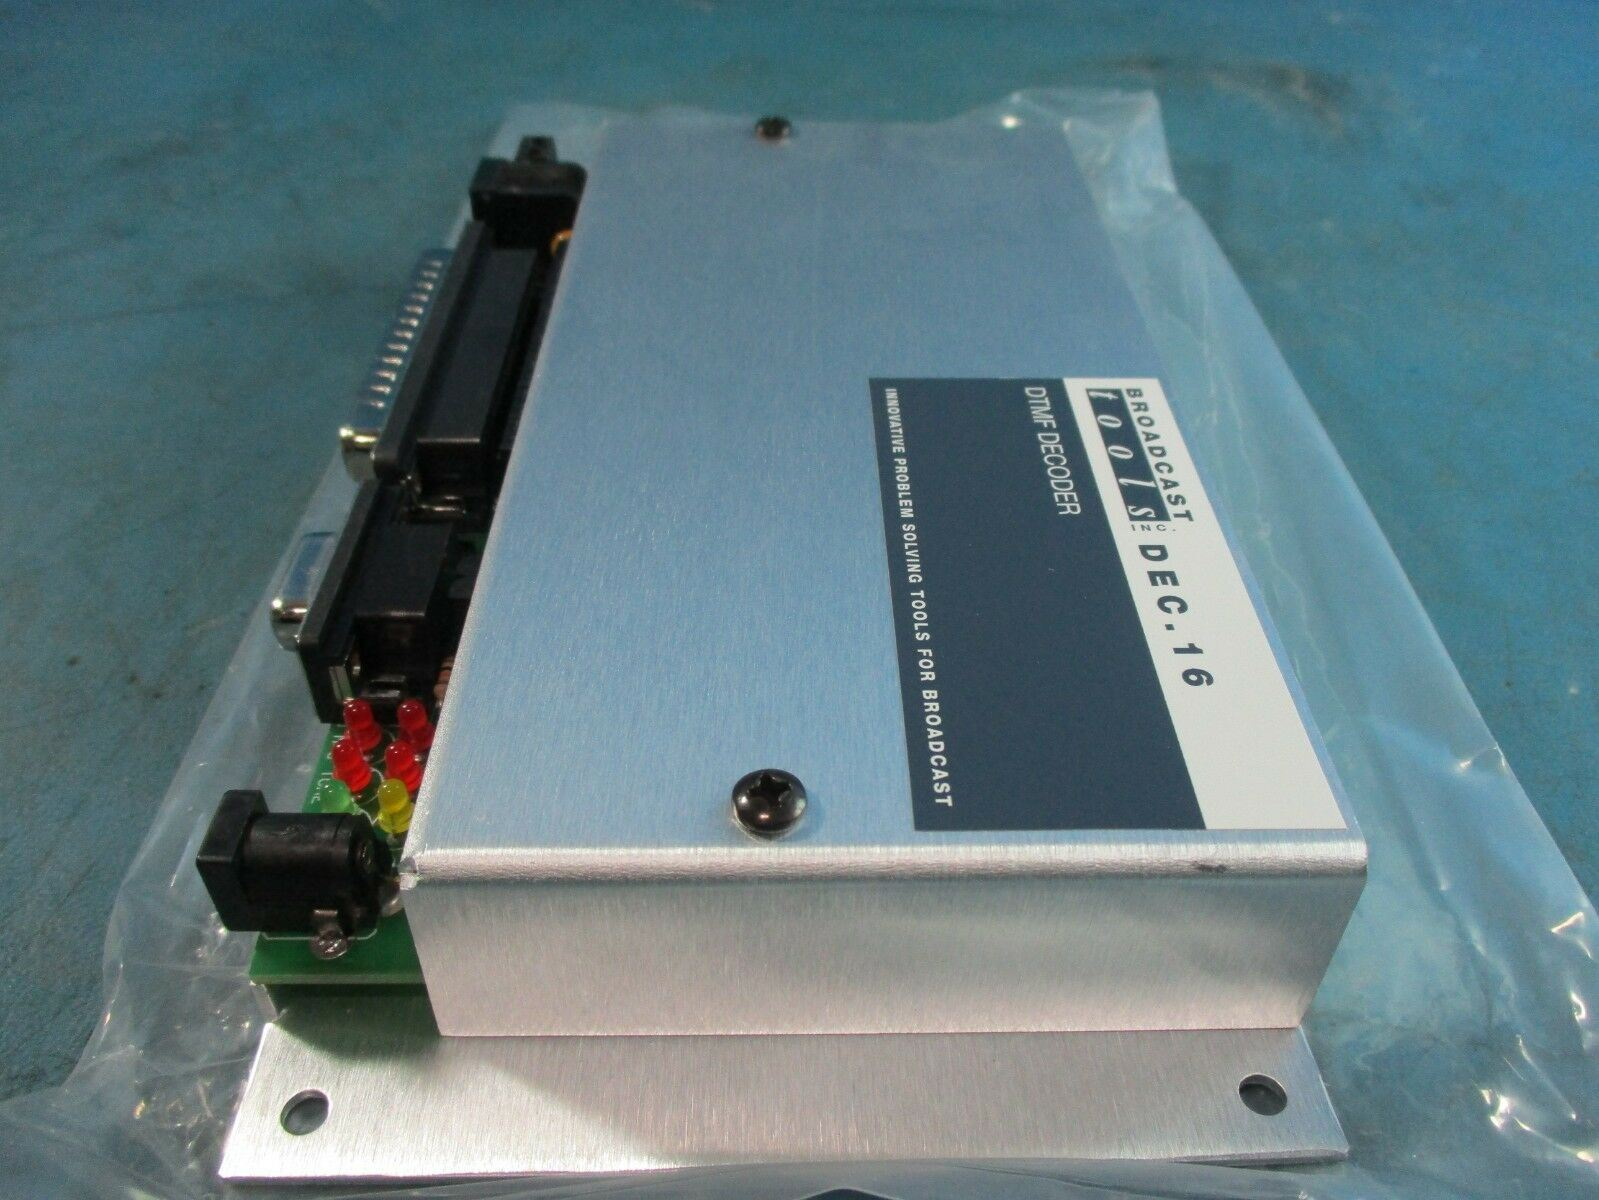 Details about Broadcast Tools DEC -16 DTMF Decoder - USED